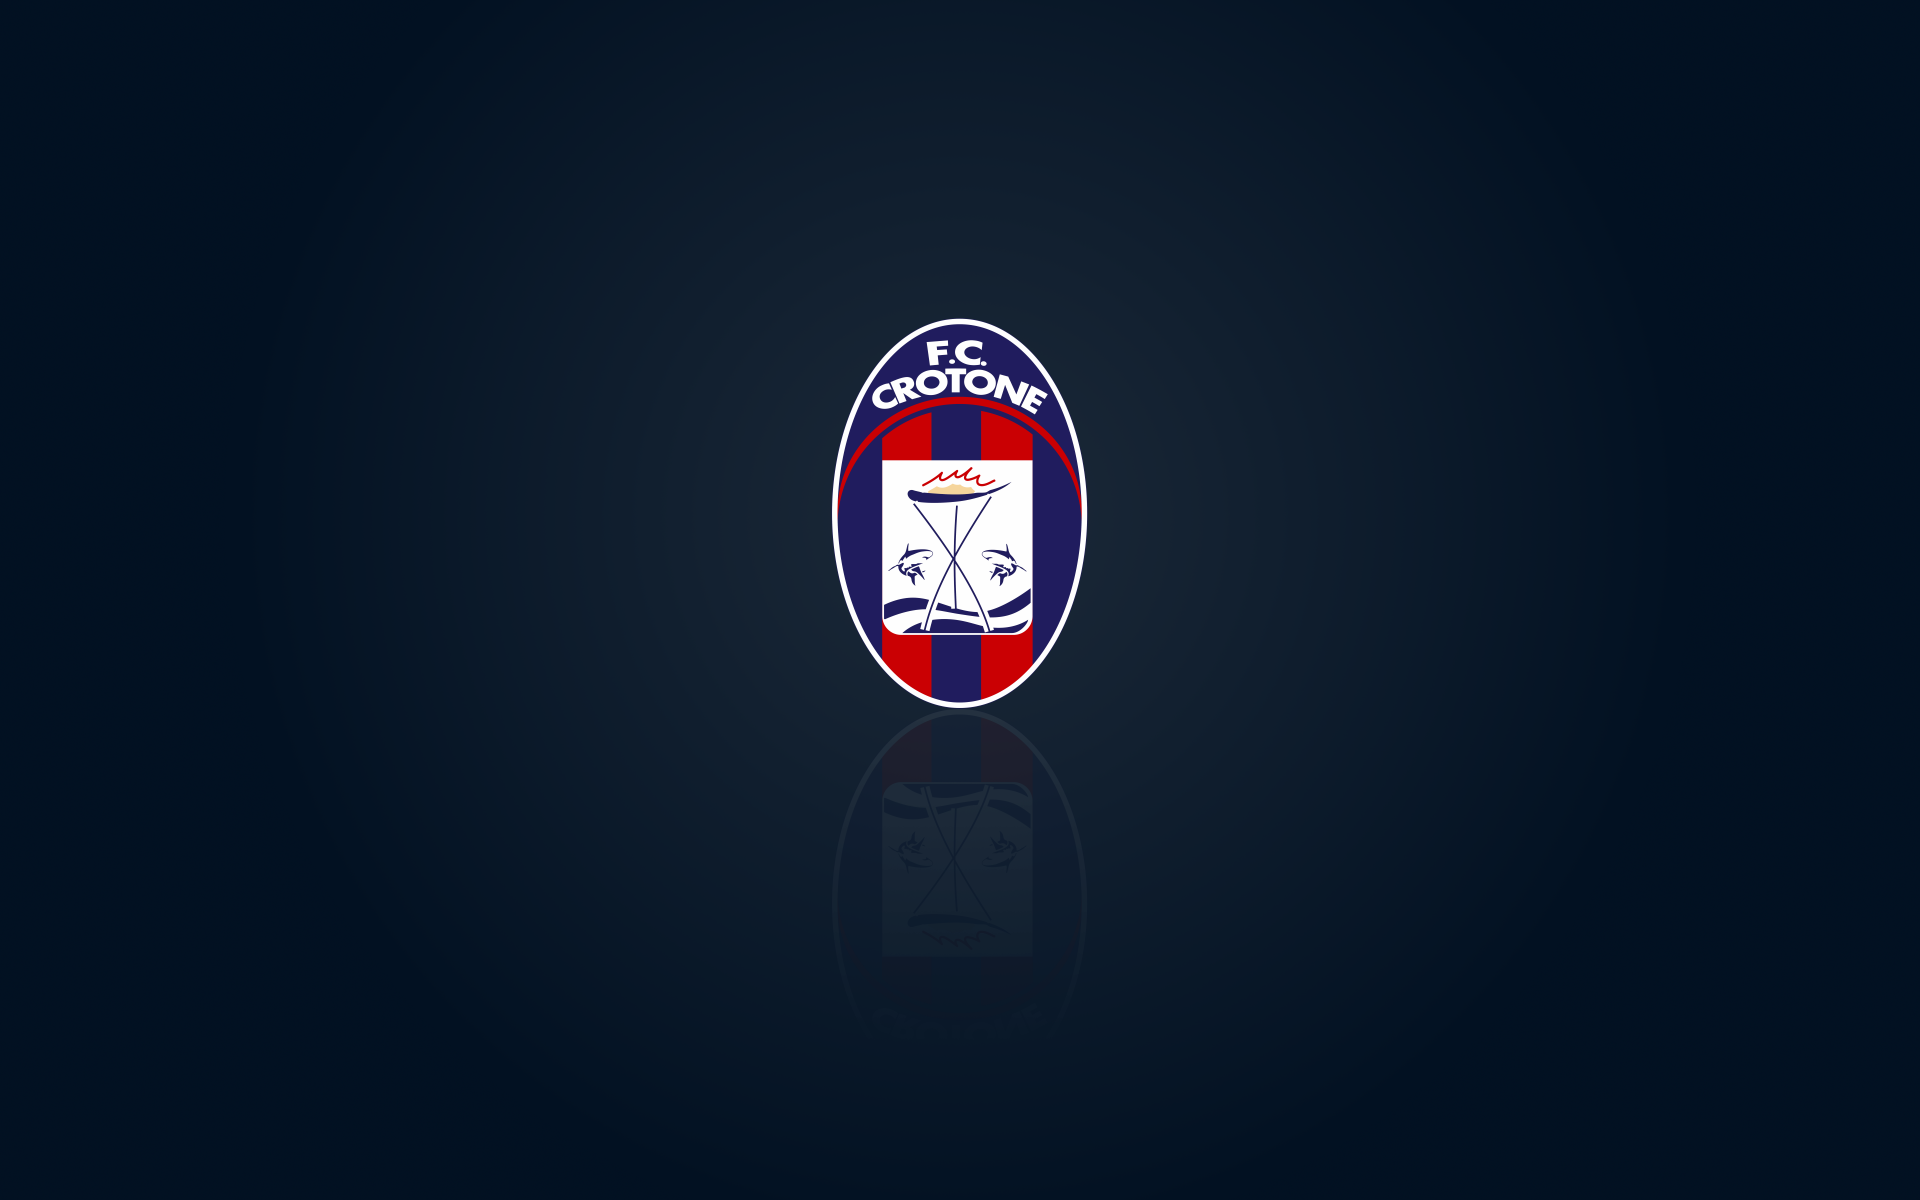 FC Crotone wallpaper with logo – 1920x1200px: